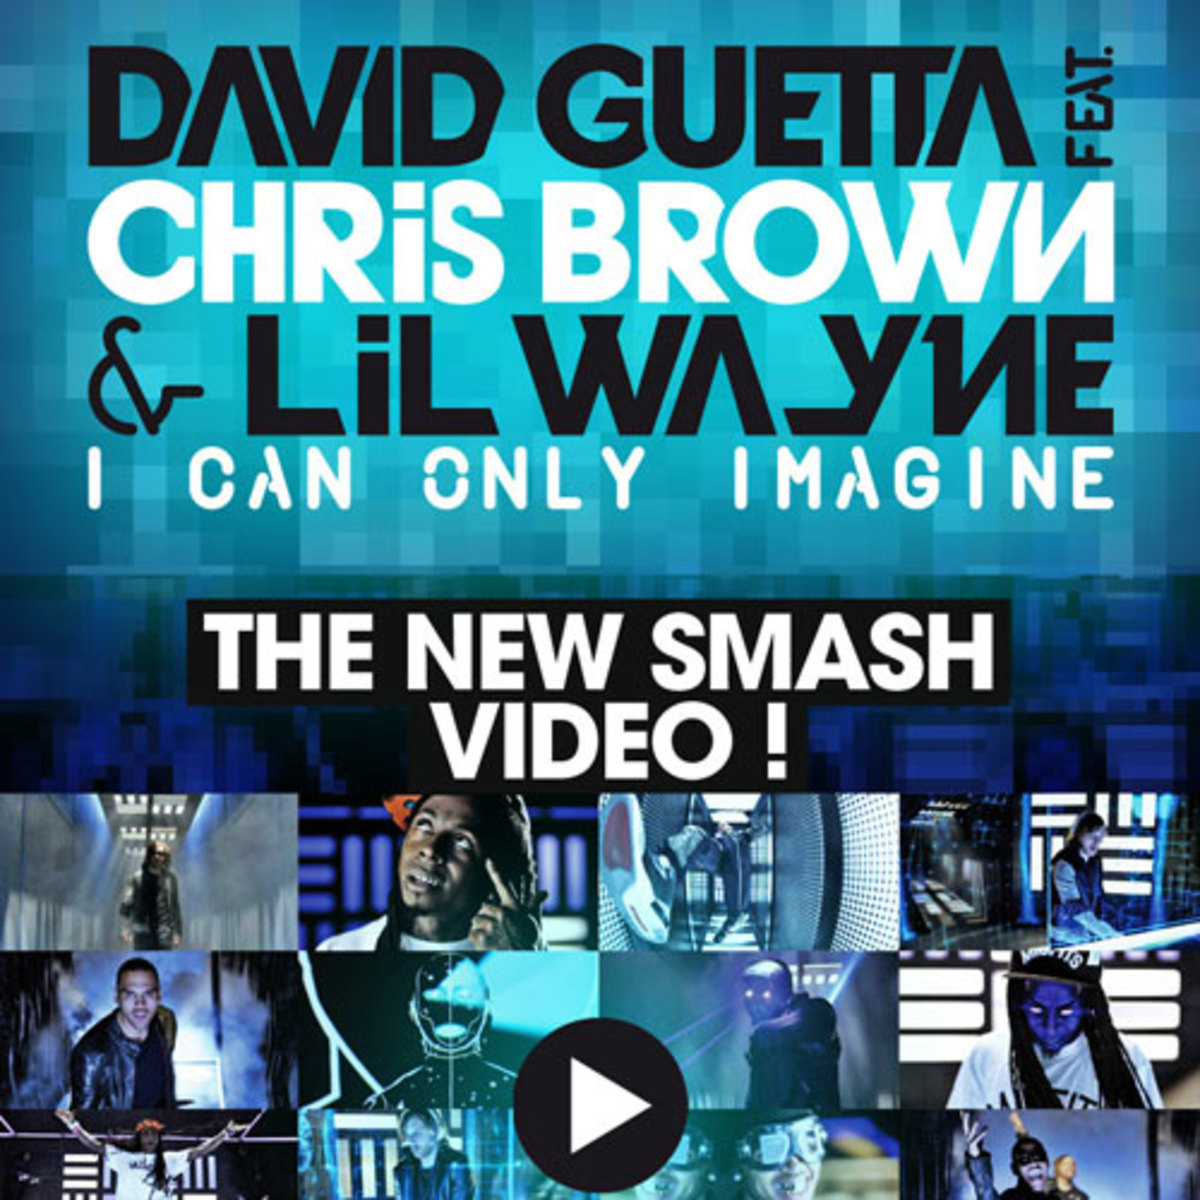 davidguetta-imaginevideo.jpg